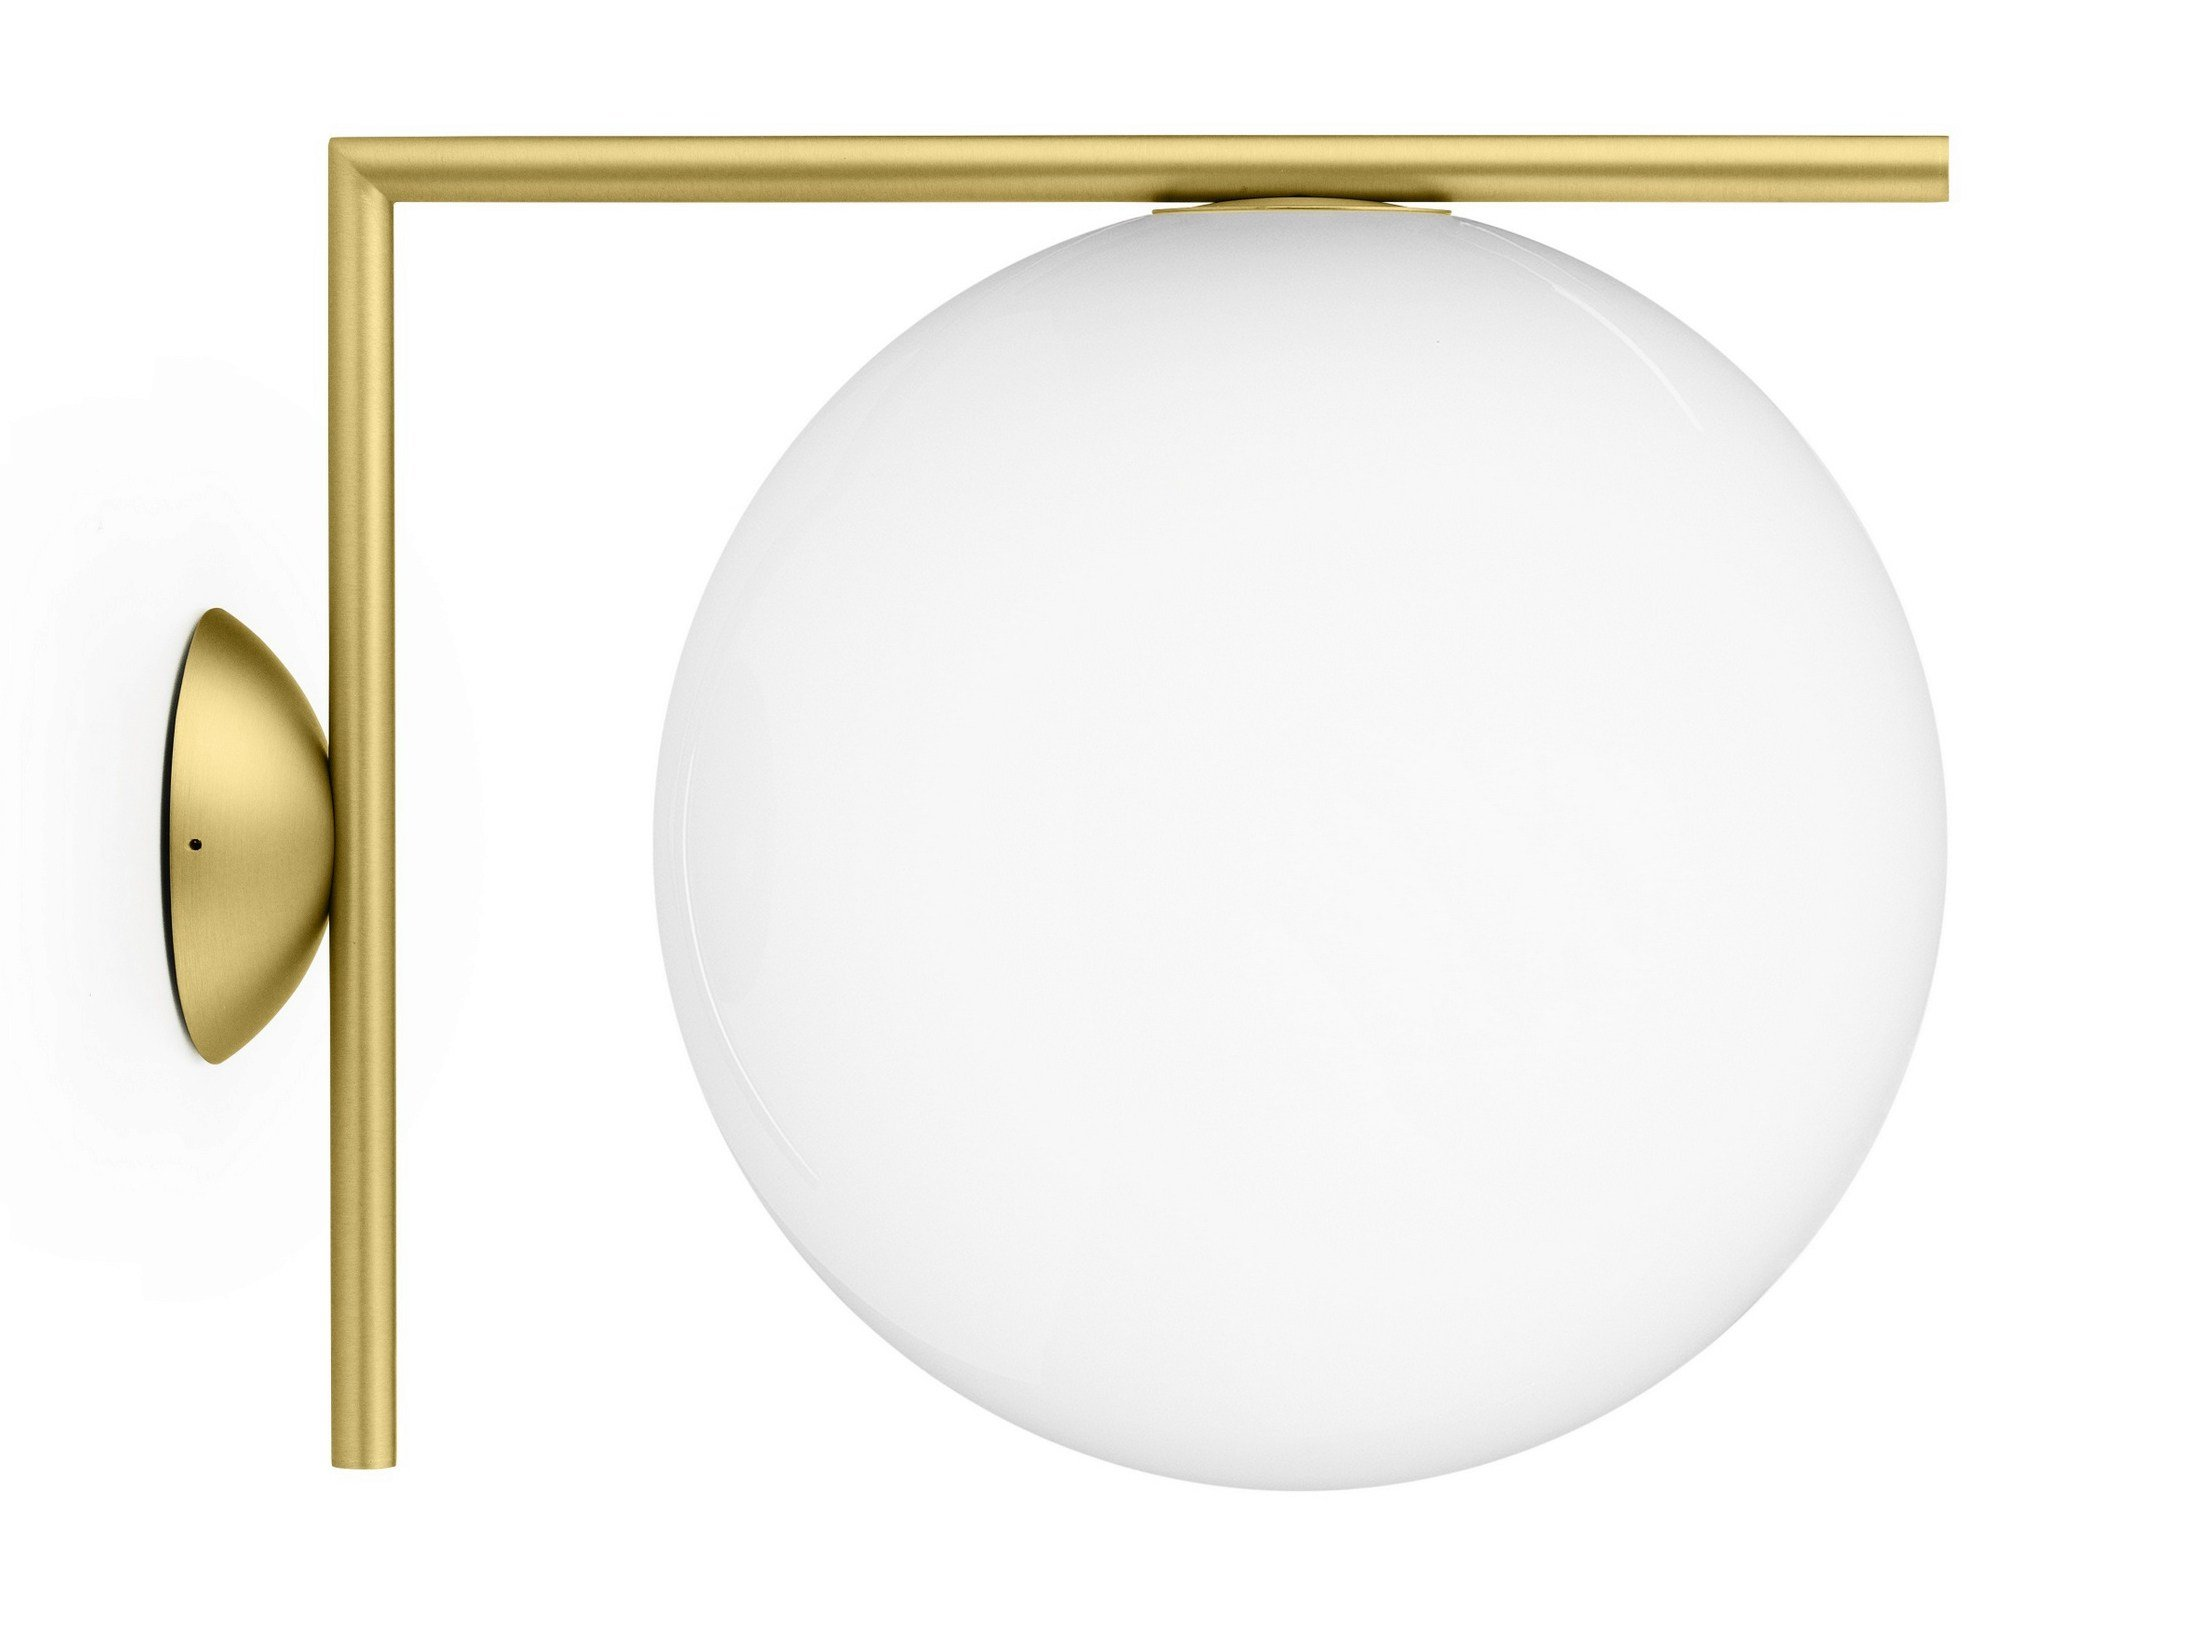 Flos Ic Lights 200 Wall Light Brushed Brass : Opal glass wall lamp IC LIGHTS CW2 by FLOS design Michael Anastassiades